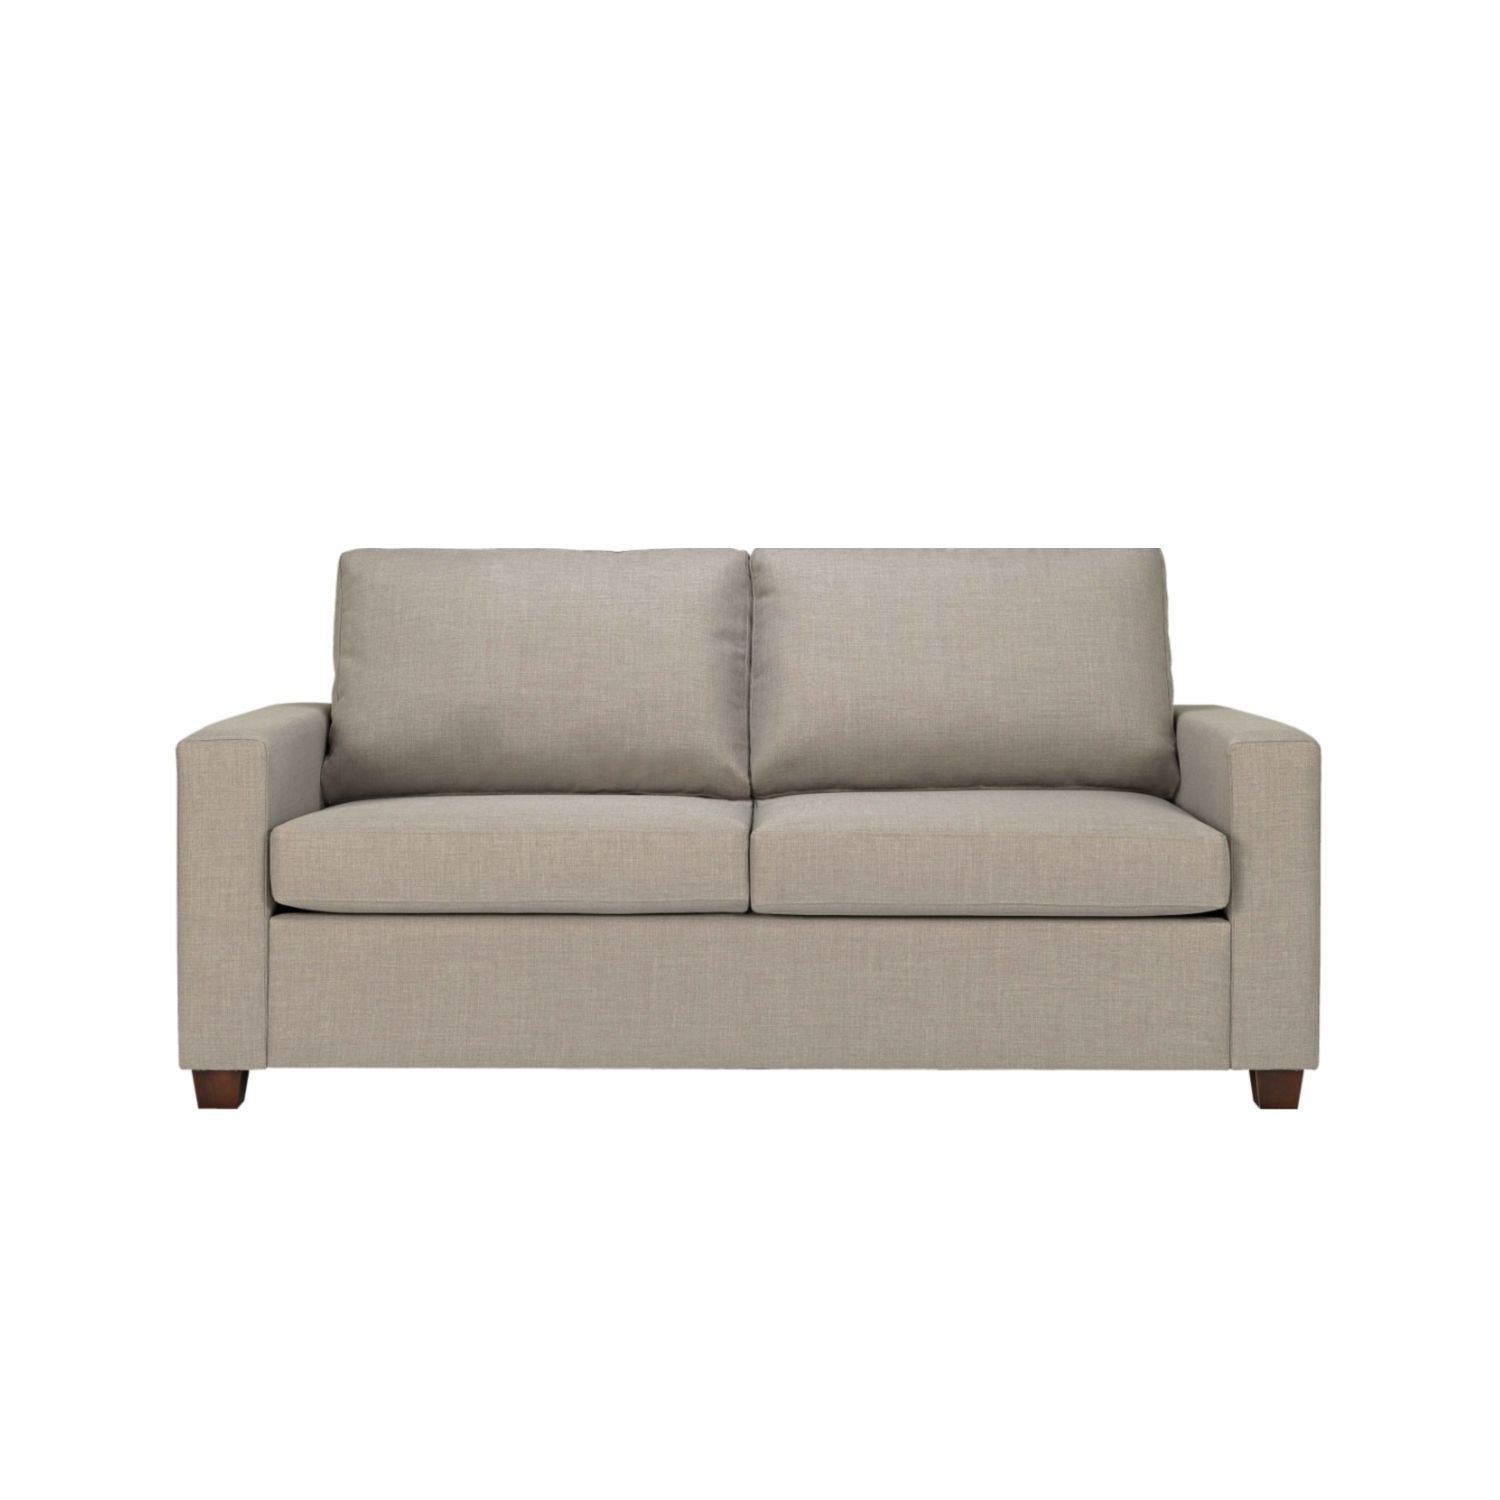 Newport Fabric Sofa From Domayne Online